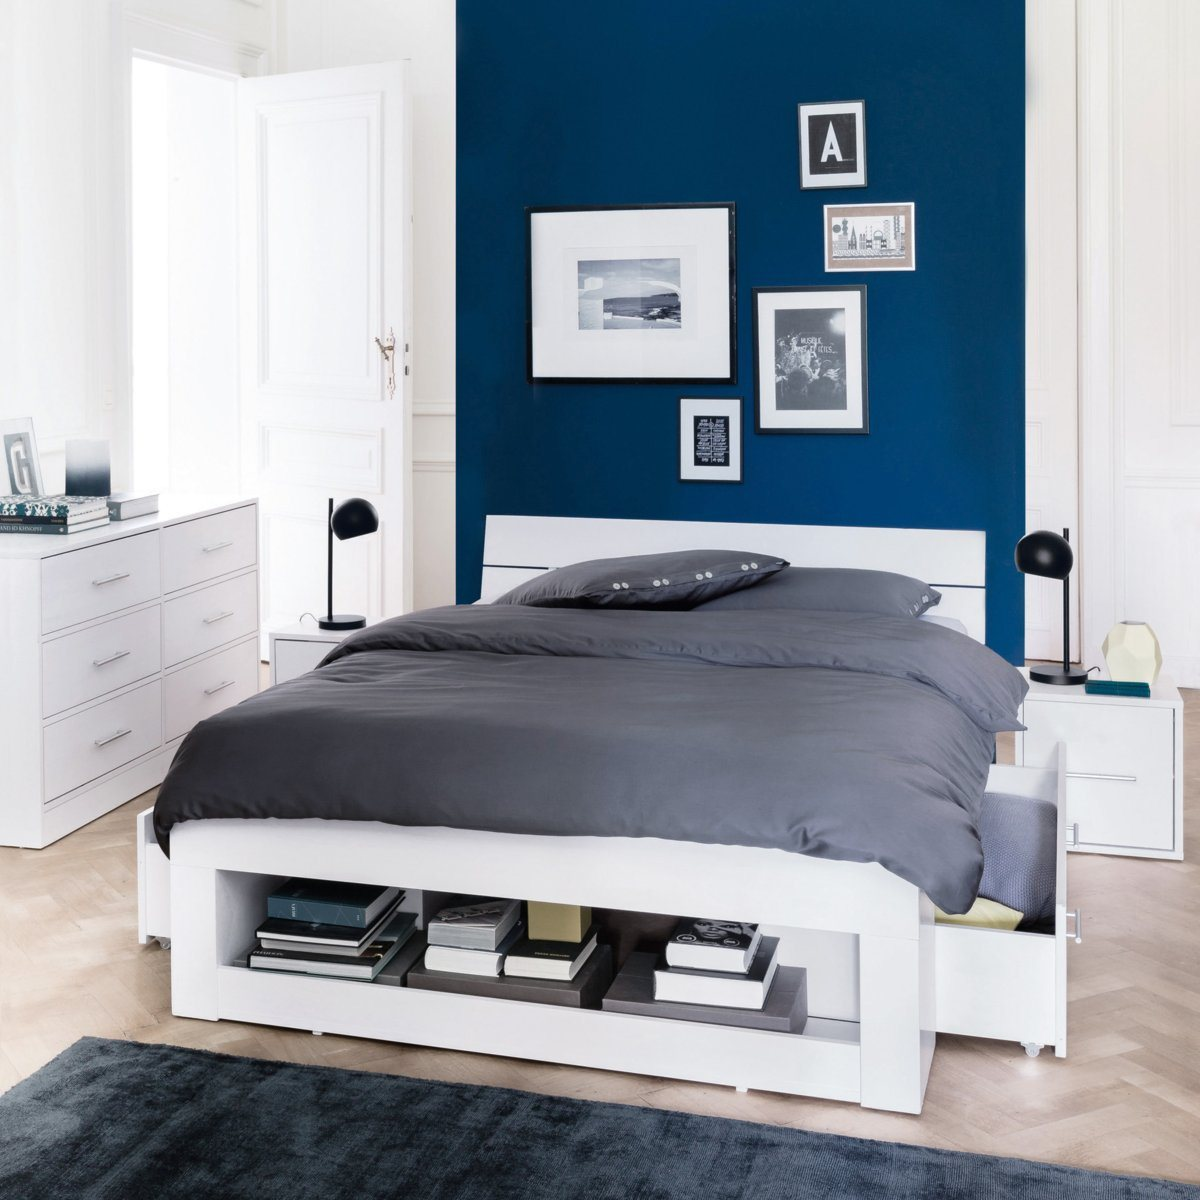 chambre turquoise et gris. Black Bedroom Furniture Sets. Home Design Ideas